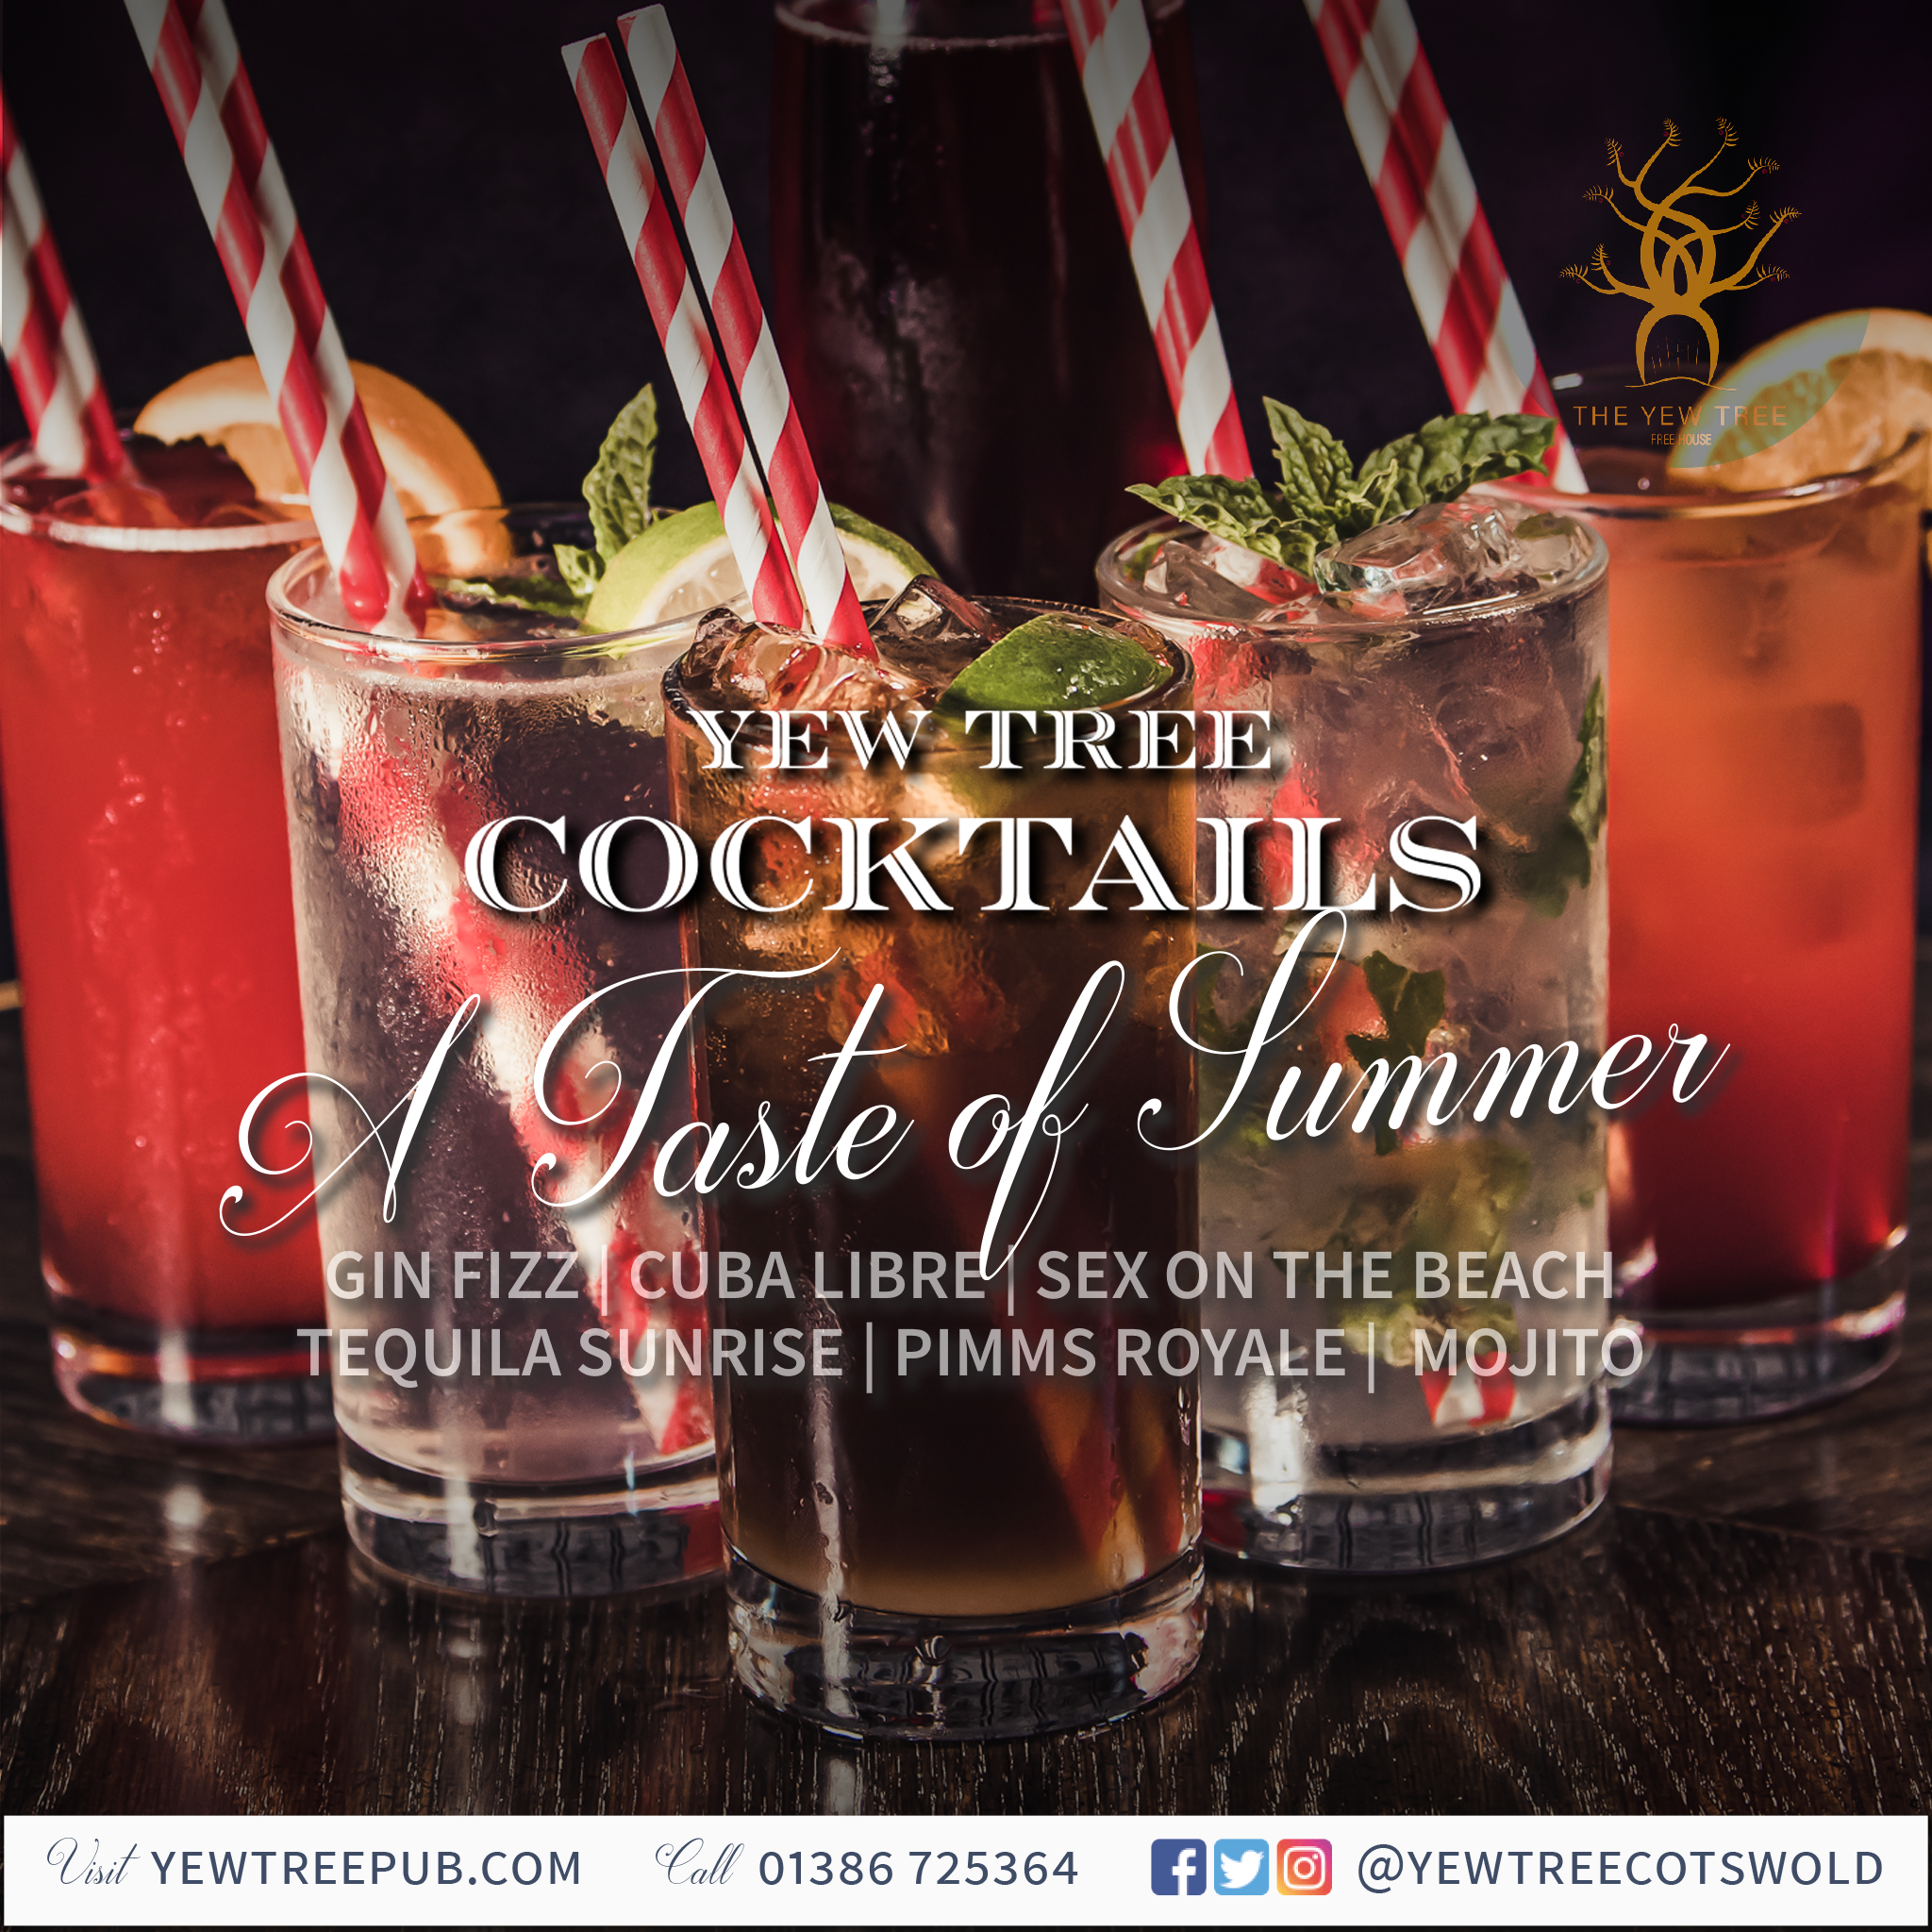 Enjoy our beautiful new cocktails!